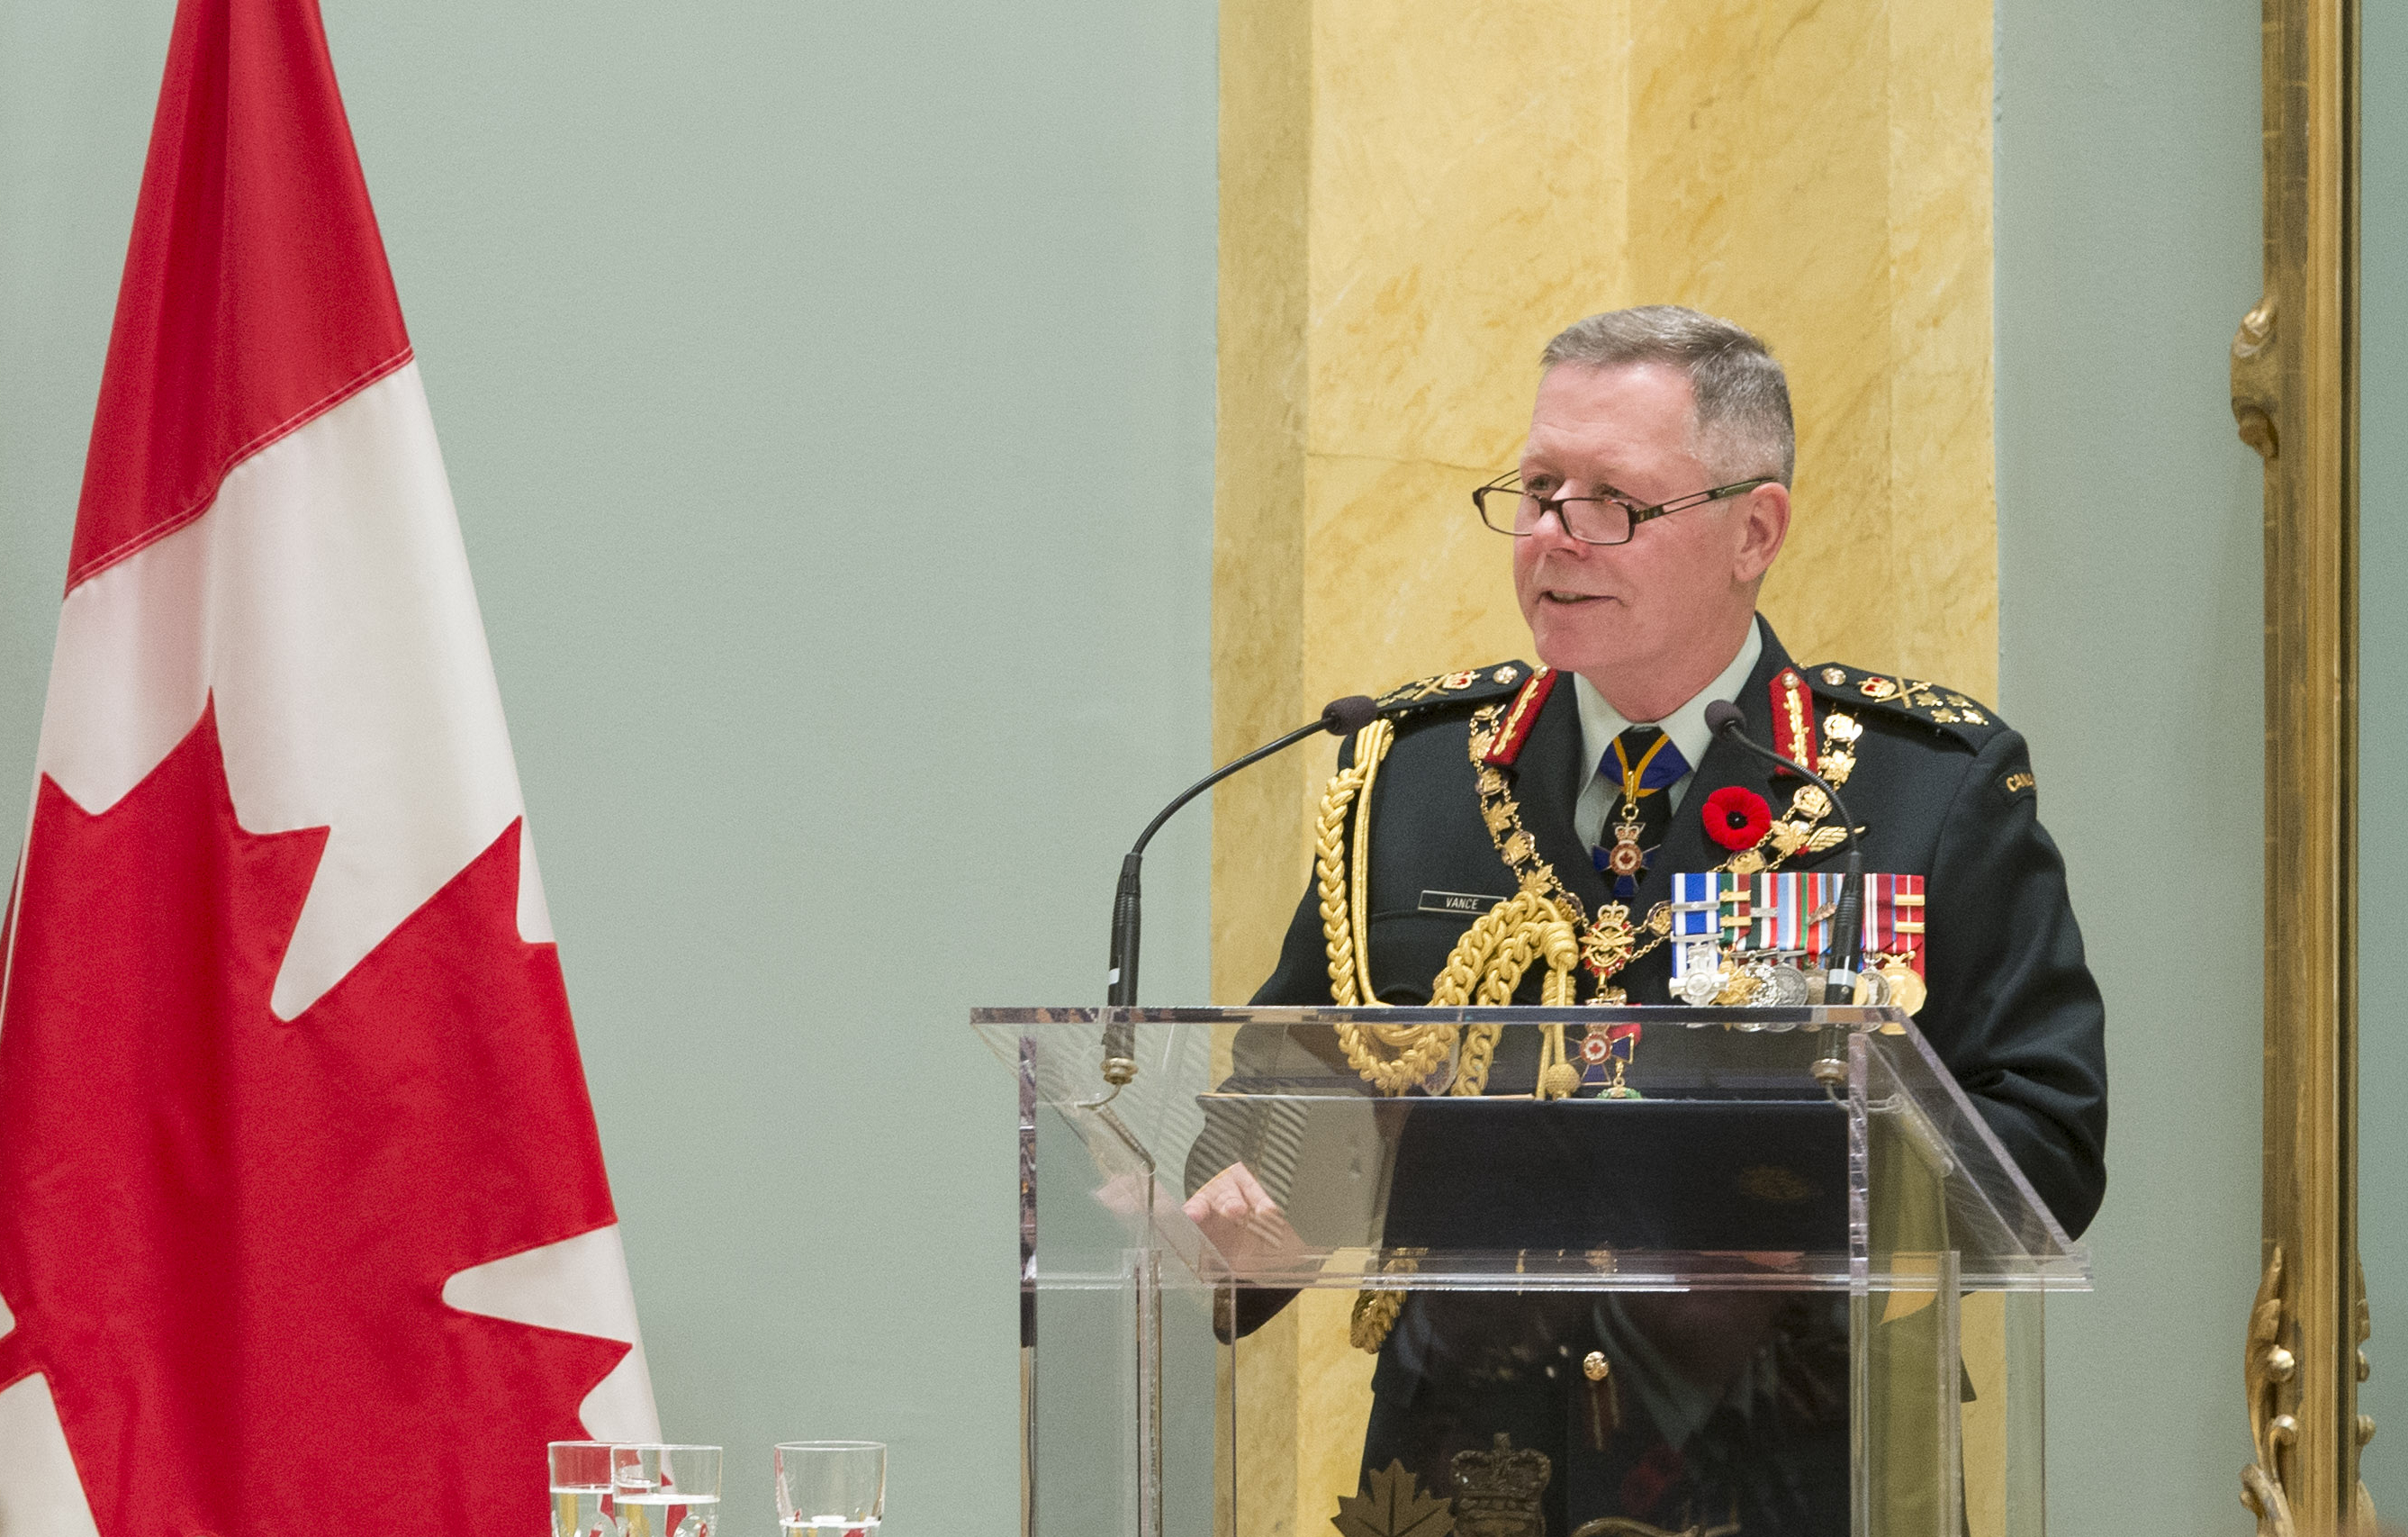 General Jonathan Vance, Chief of the Defence Staff, addresses inductees into the Order of Military Merit and their guests following the presentation of the order's insignia at Rideau Hall on November 10, 2017. PHOTO: Sergeant Johanie Maheu, Rideau Hall © OSGG, GG05-2017-0395-065